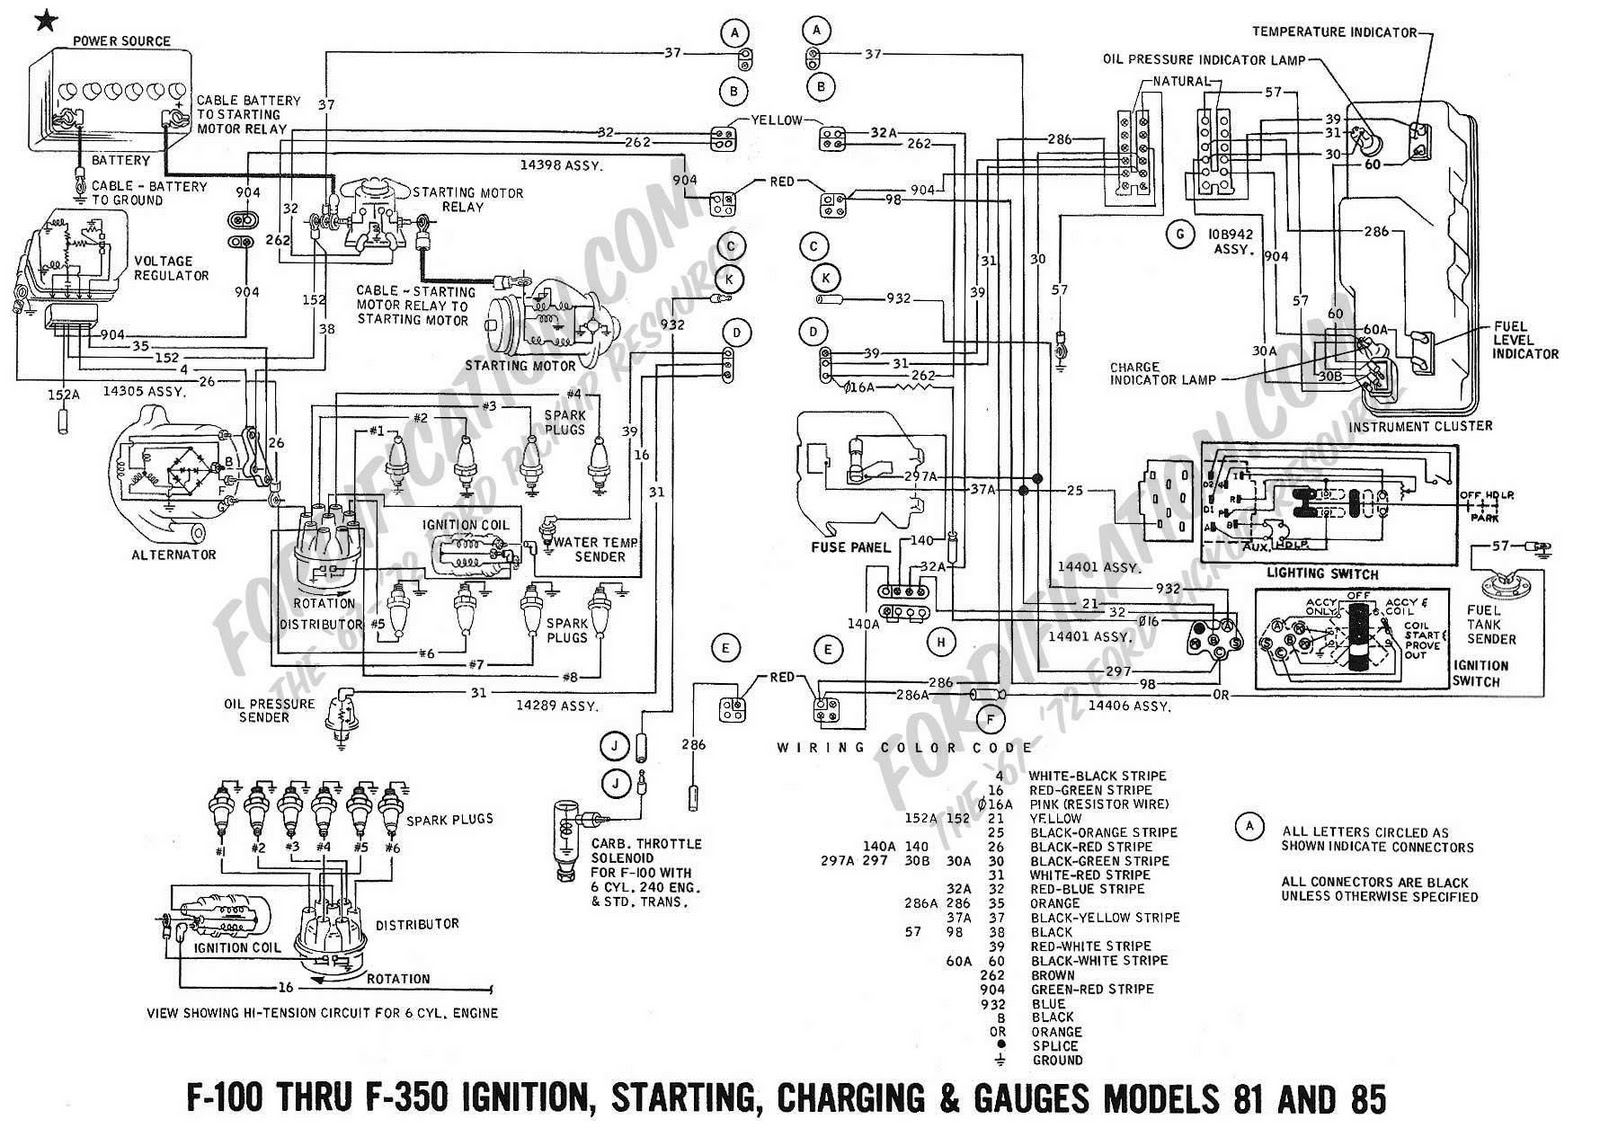 1990 Ford Truck Wiring Diagram Books Of Jeep Wrangler Starting System 67 Diagrams Schematics Rh Readinghypnotherapist Co Uk F150 49